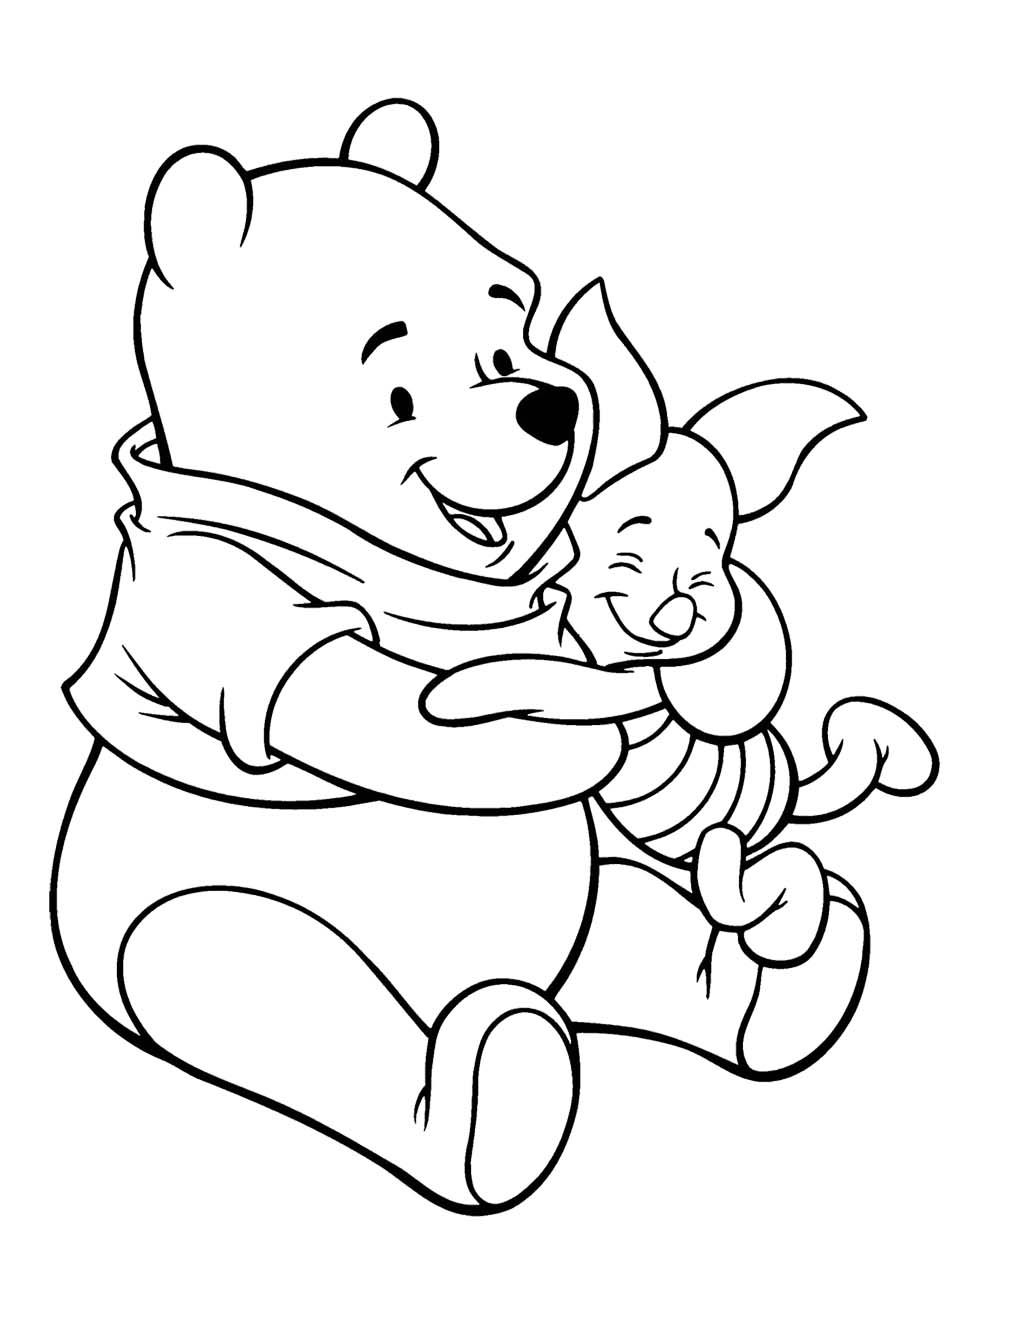 baby pooh clipart coloring pages - photo#36